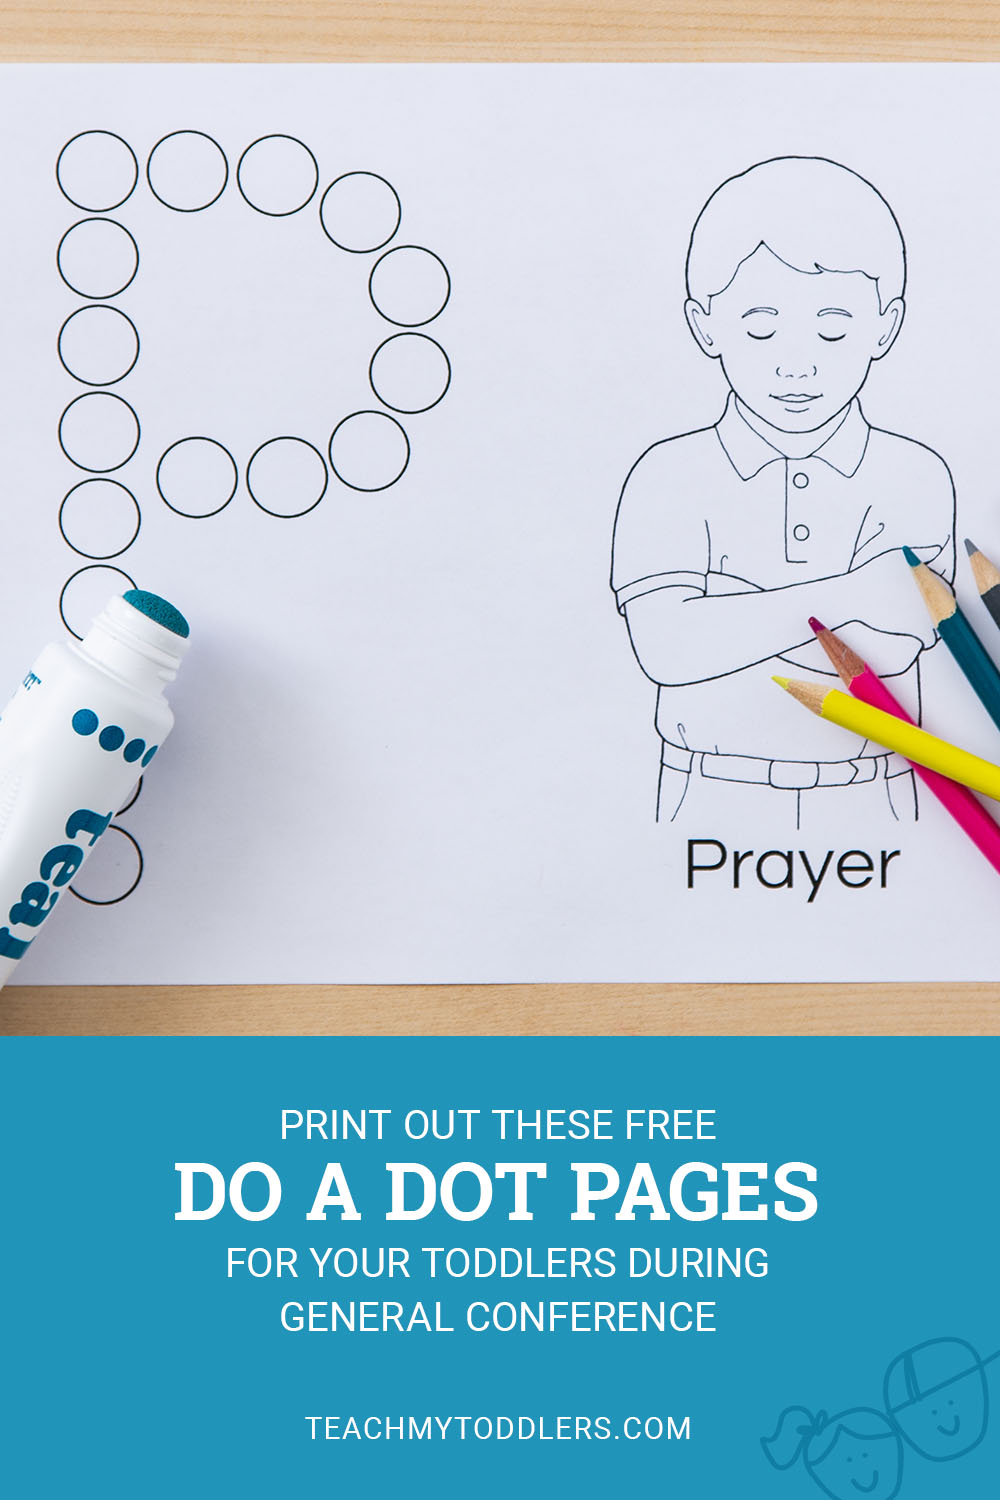 Print out these fun free do a dot pages for your toddlers during general conference